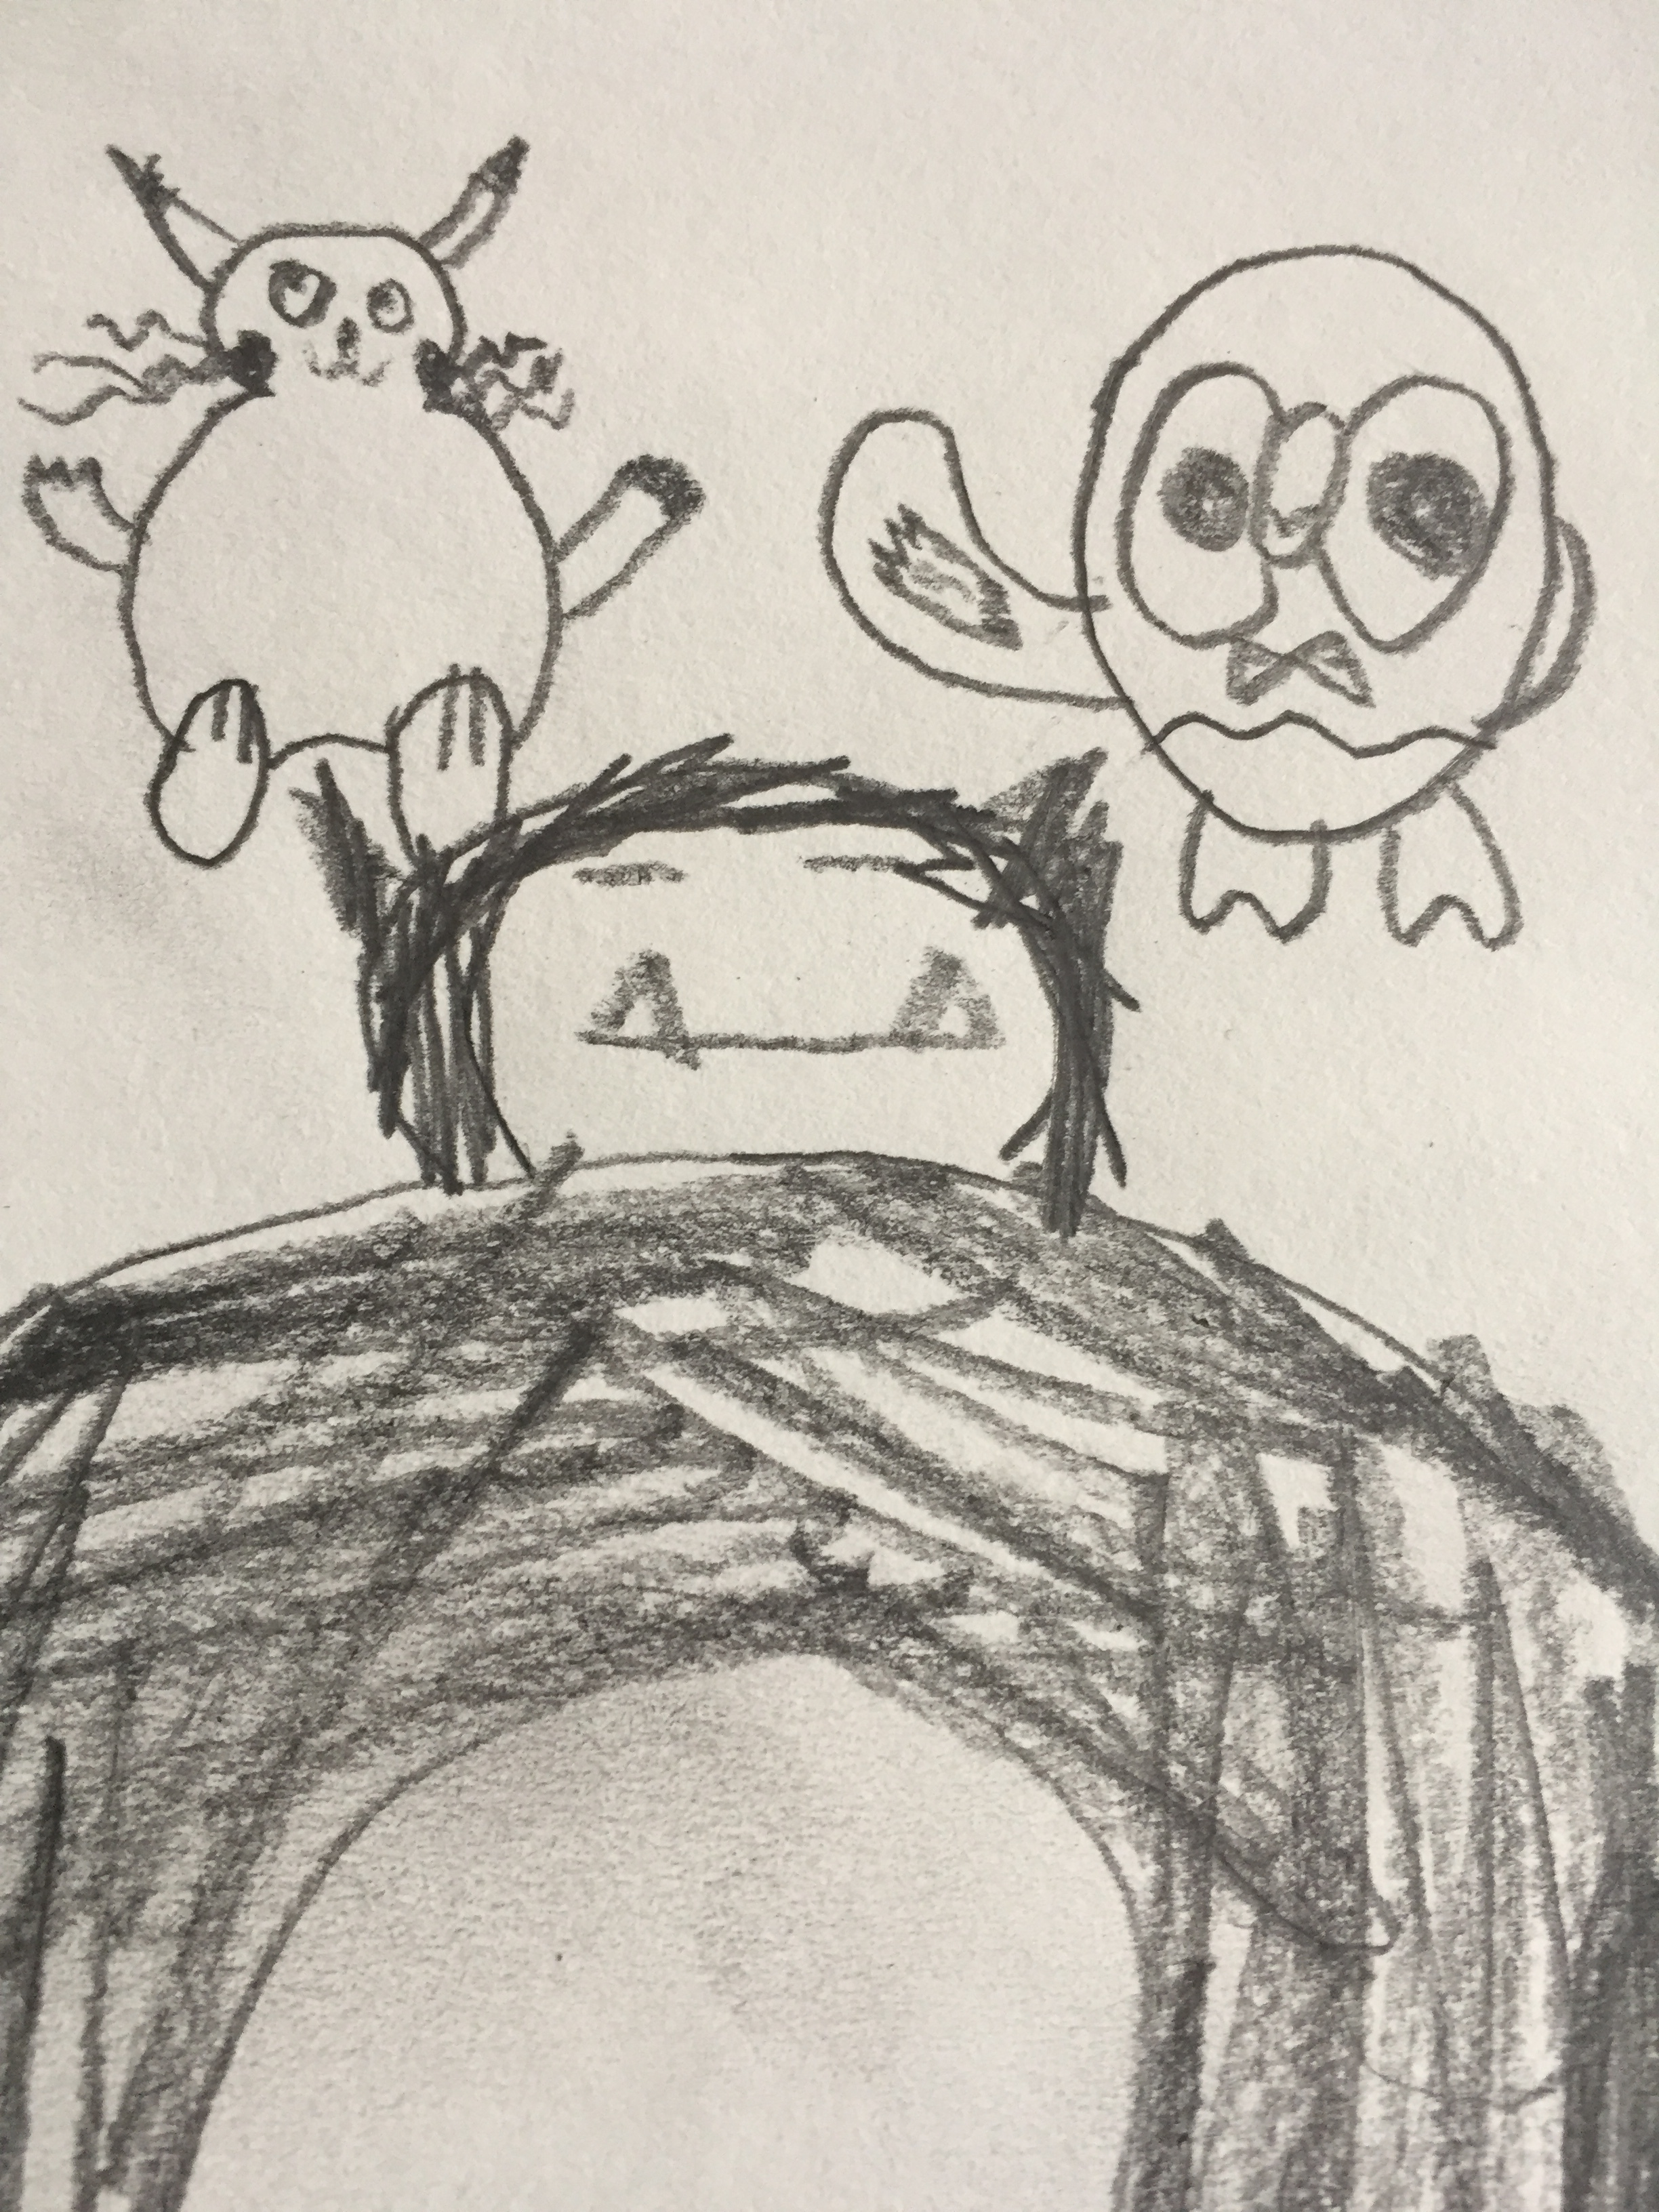 Pretty sweet Snorlax and Rowlet! I especially dig the gesture Rowlet is giving, a nice howdy.